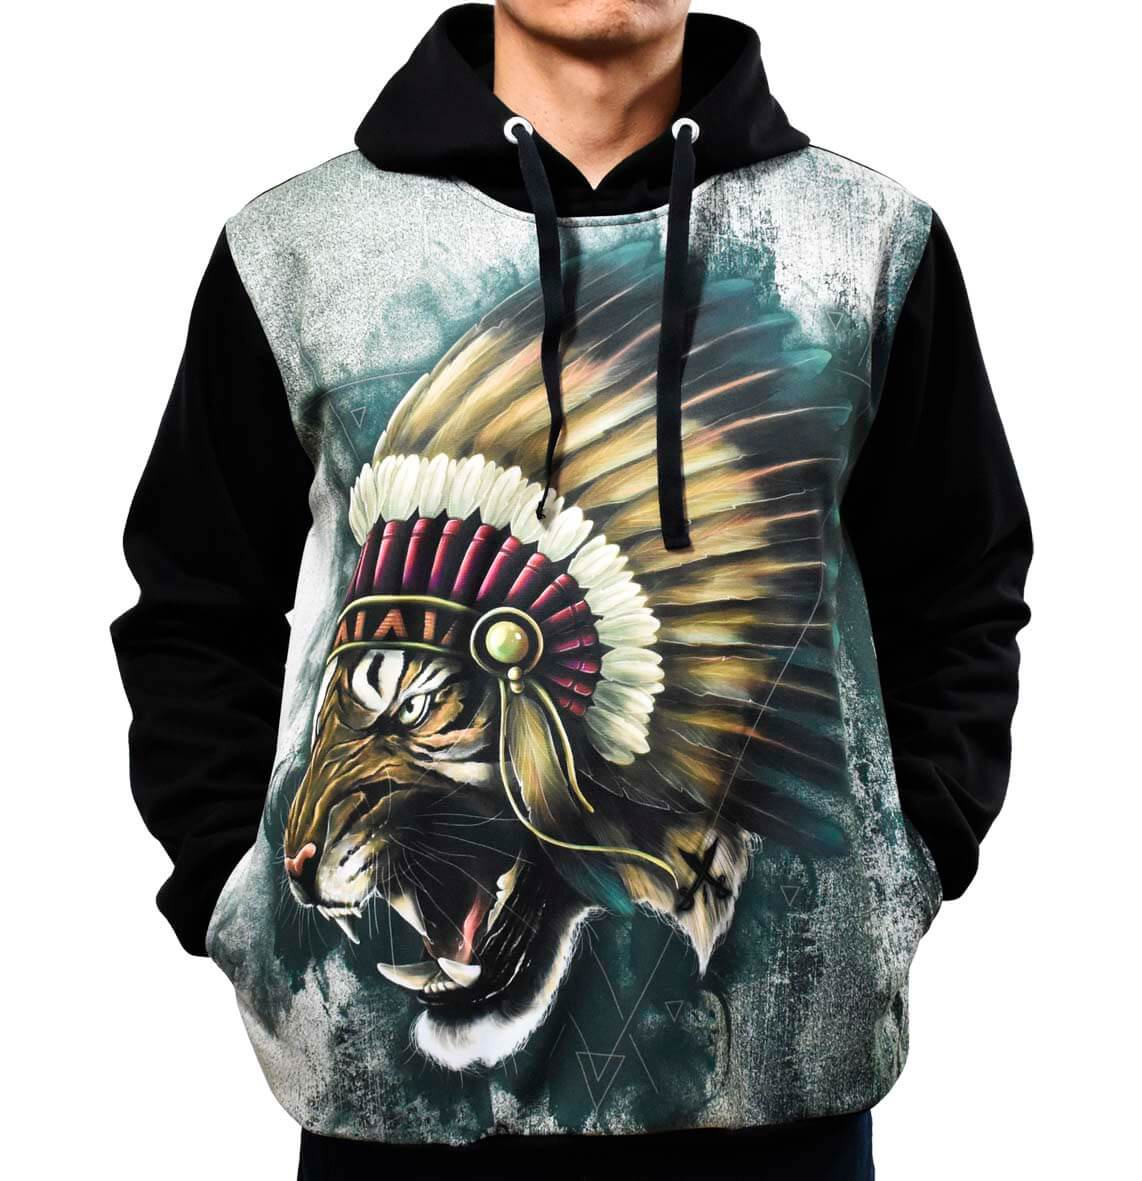 4962fb8679 Blusa de Frio Printfull Moletom Tiger Warlod Indian no Elo7 ...